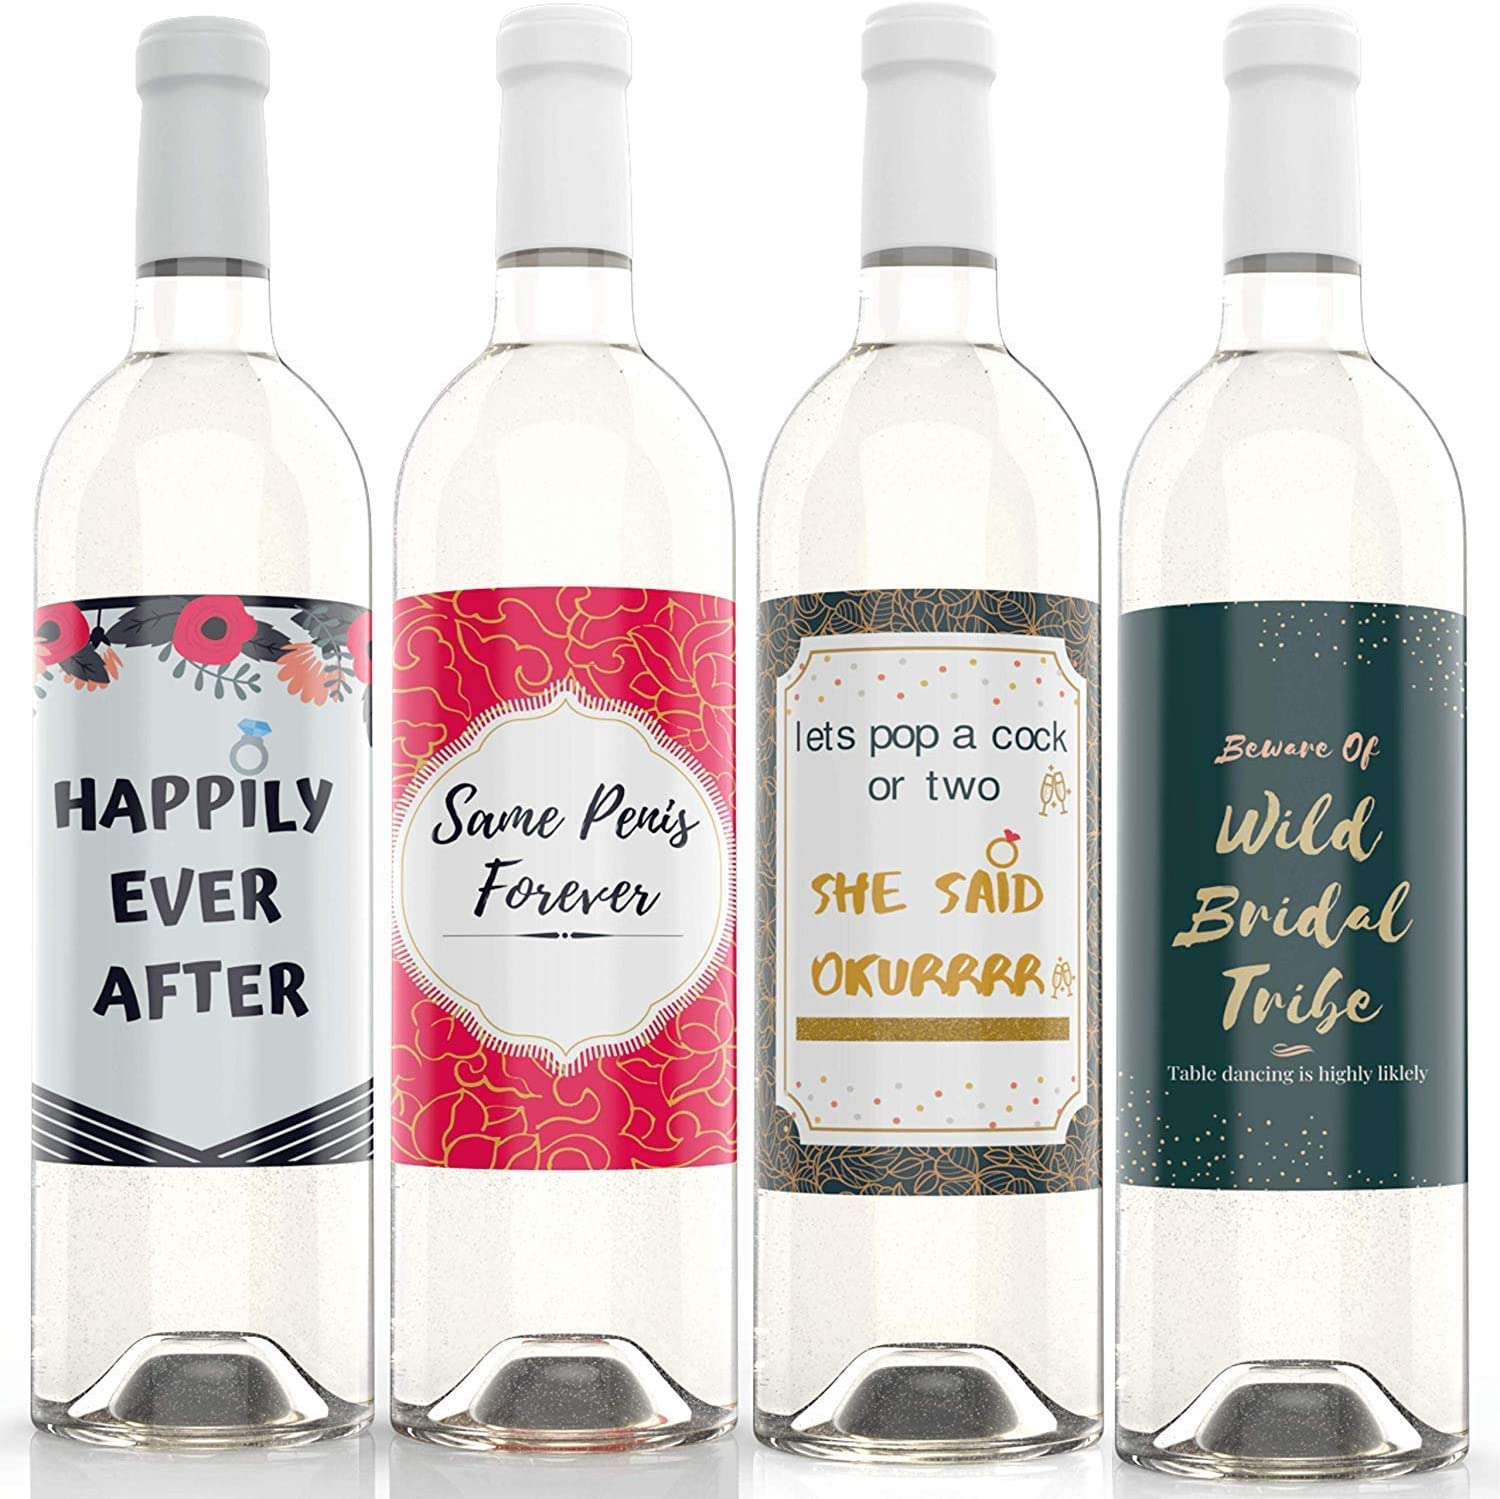 """Bachelorette party wine labeI Bridal Shower Wedding Wine Bottle Labels - 4"""" x 5"""" (4 pack) Bridal Shower Party Favors Gifts Bridesmaids Engagement Decor Bride Maid of Honor gag gift"""